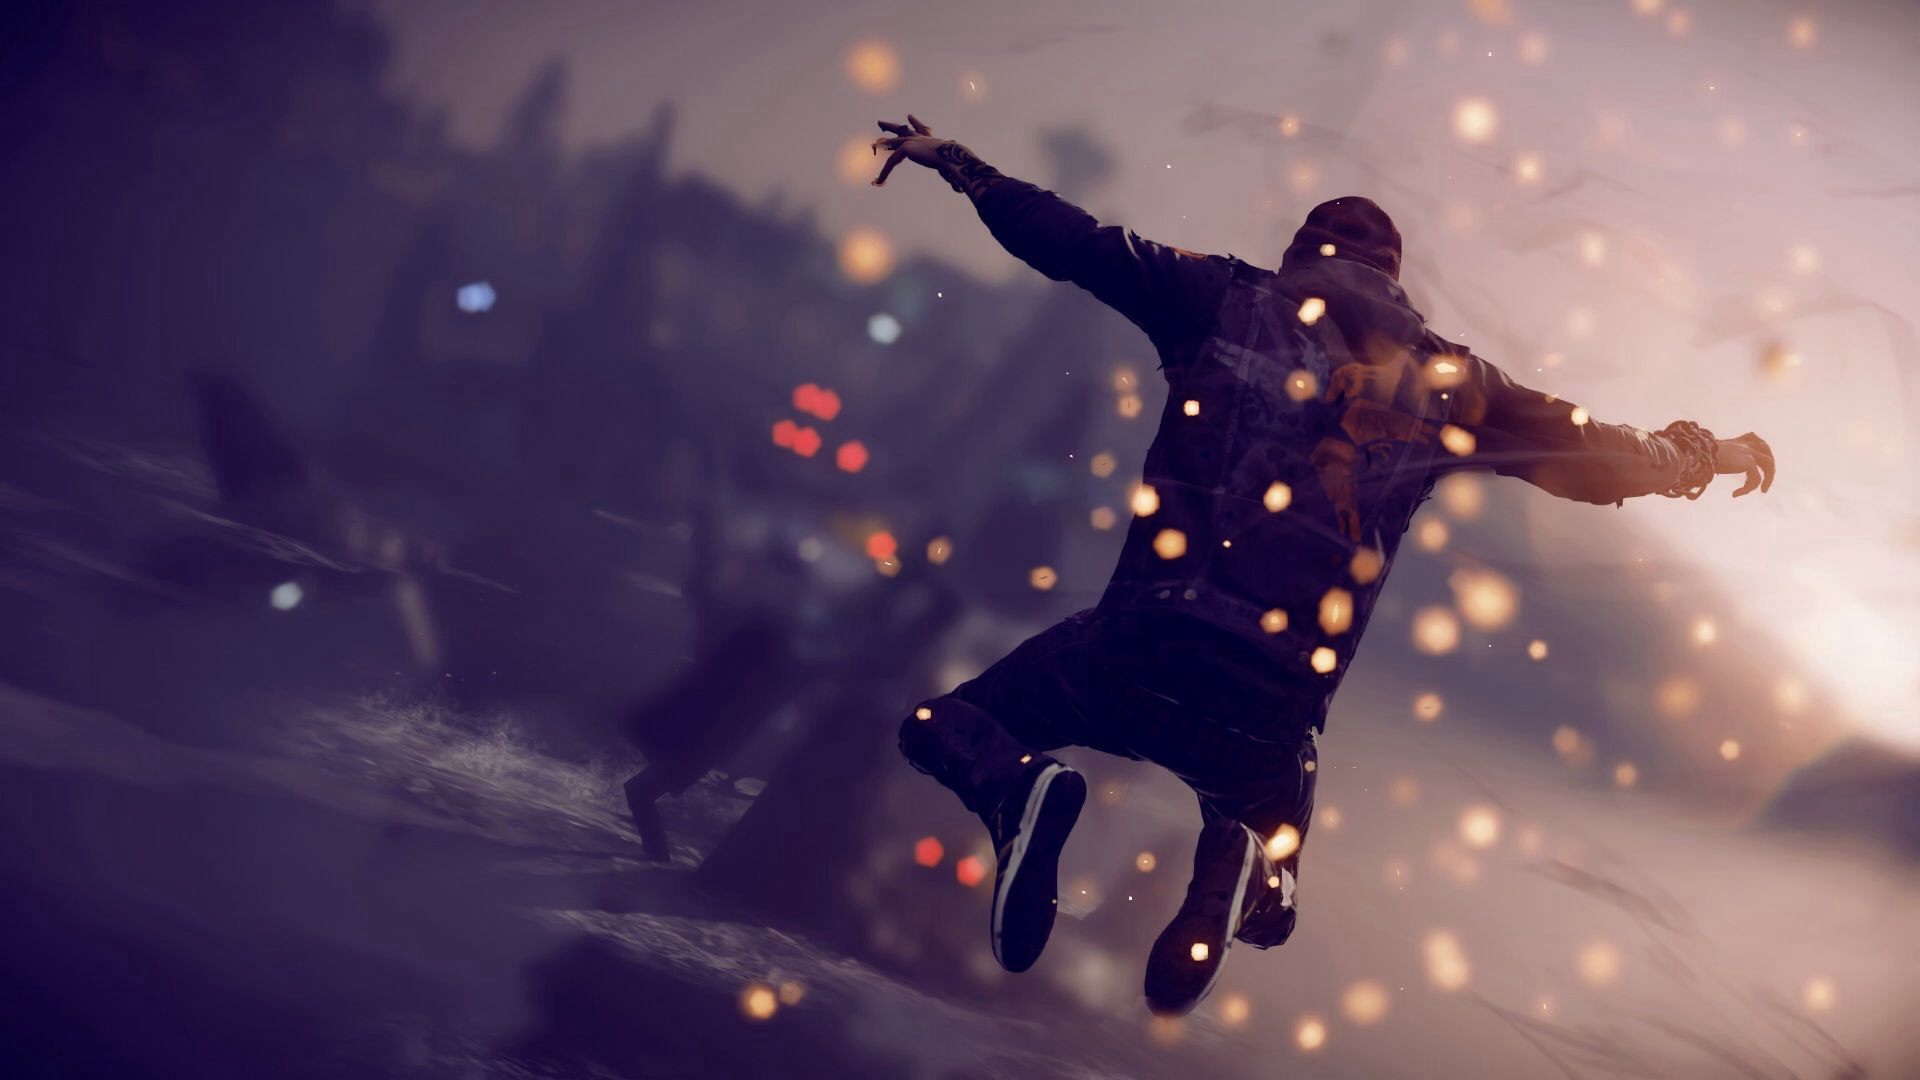 Infamous Second Son Hd Oboi Fony Wallpaper 1920 1080 Infamous